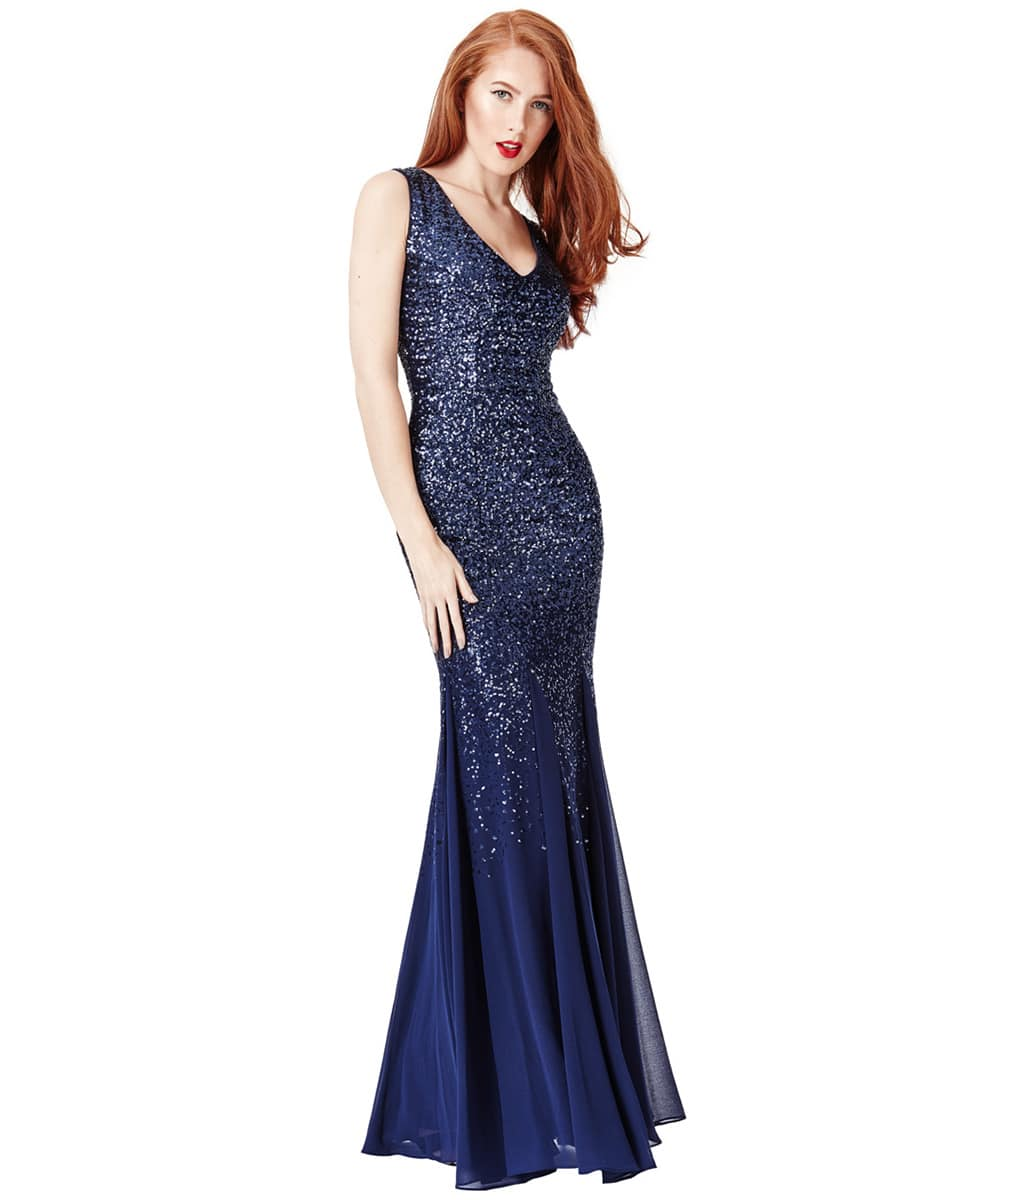 City Goddess - Navy Sequins & Chiffon Gown